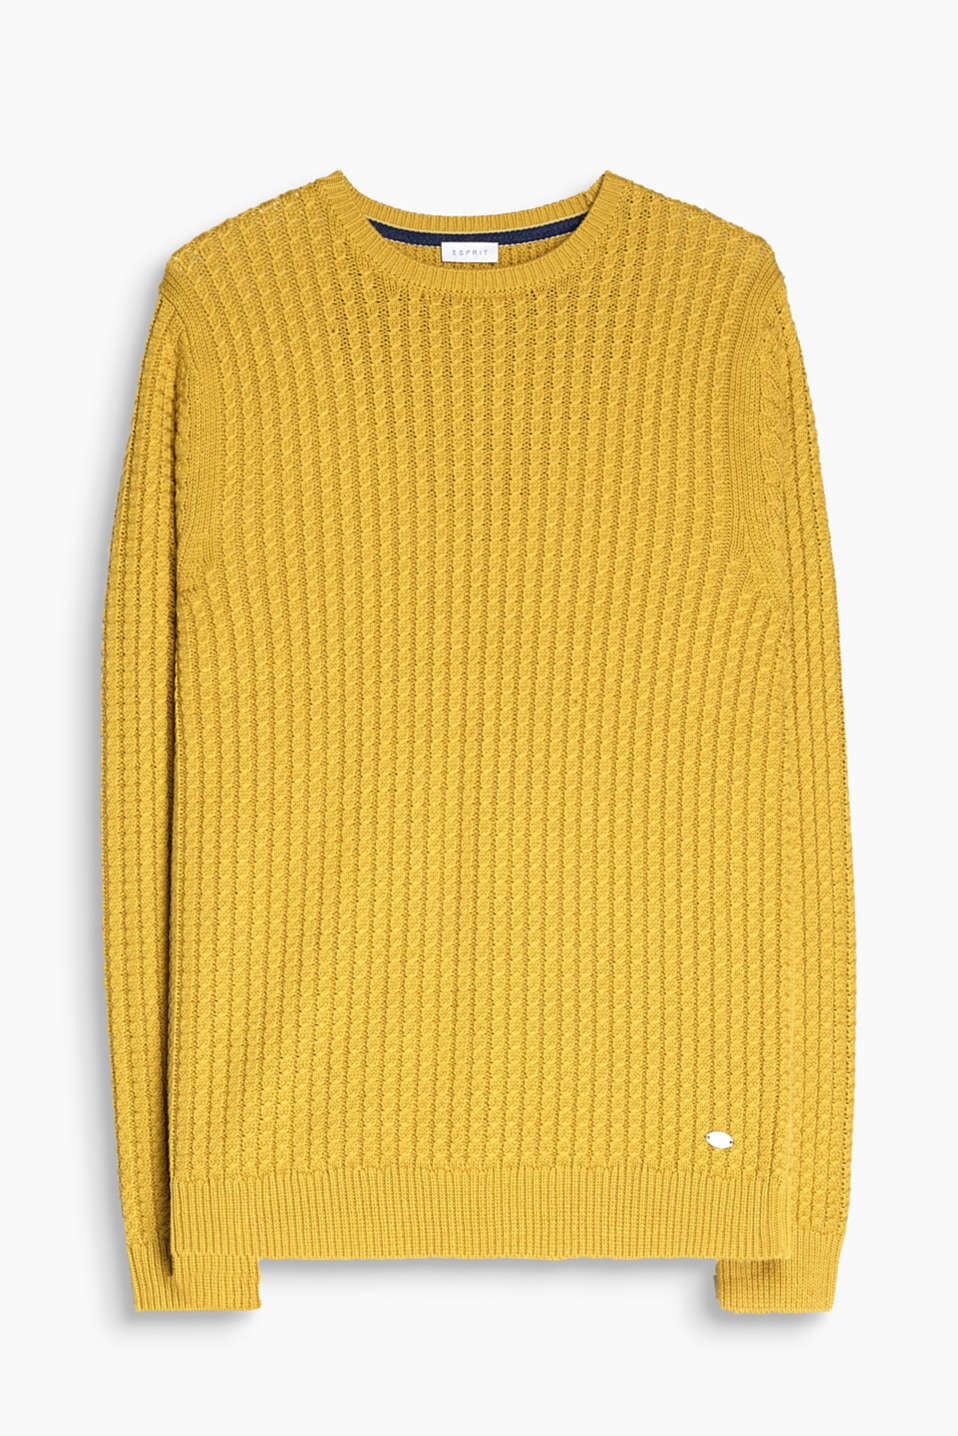 We love knitwear! This jumper with a narrow cable knit pattern is the perfect example!